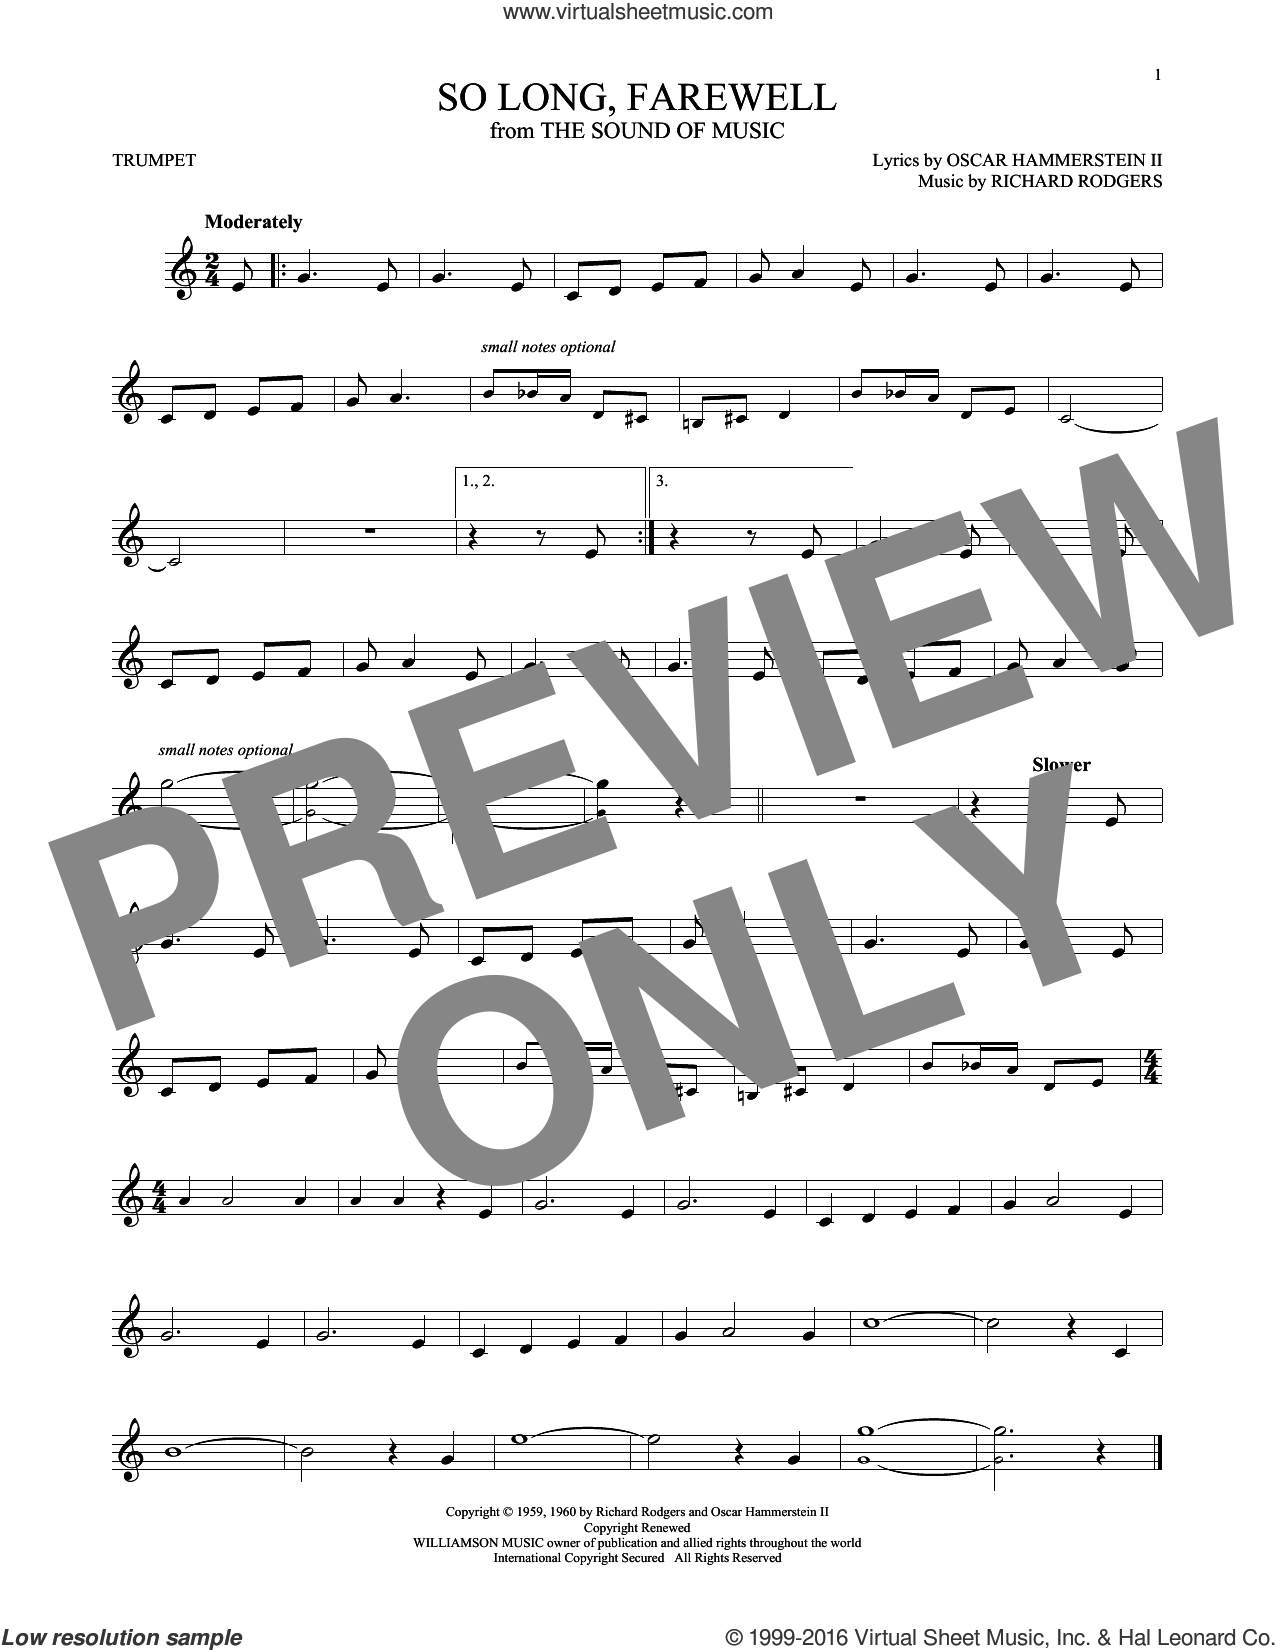 So Long, Farewell sheet music for trumpet solo by Rodgers & Hammerstein, Oscar II Hammerstein and Richard Rodgers, intermediate skill level